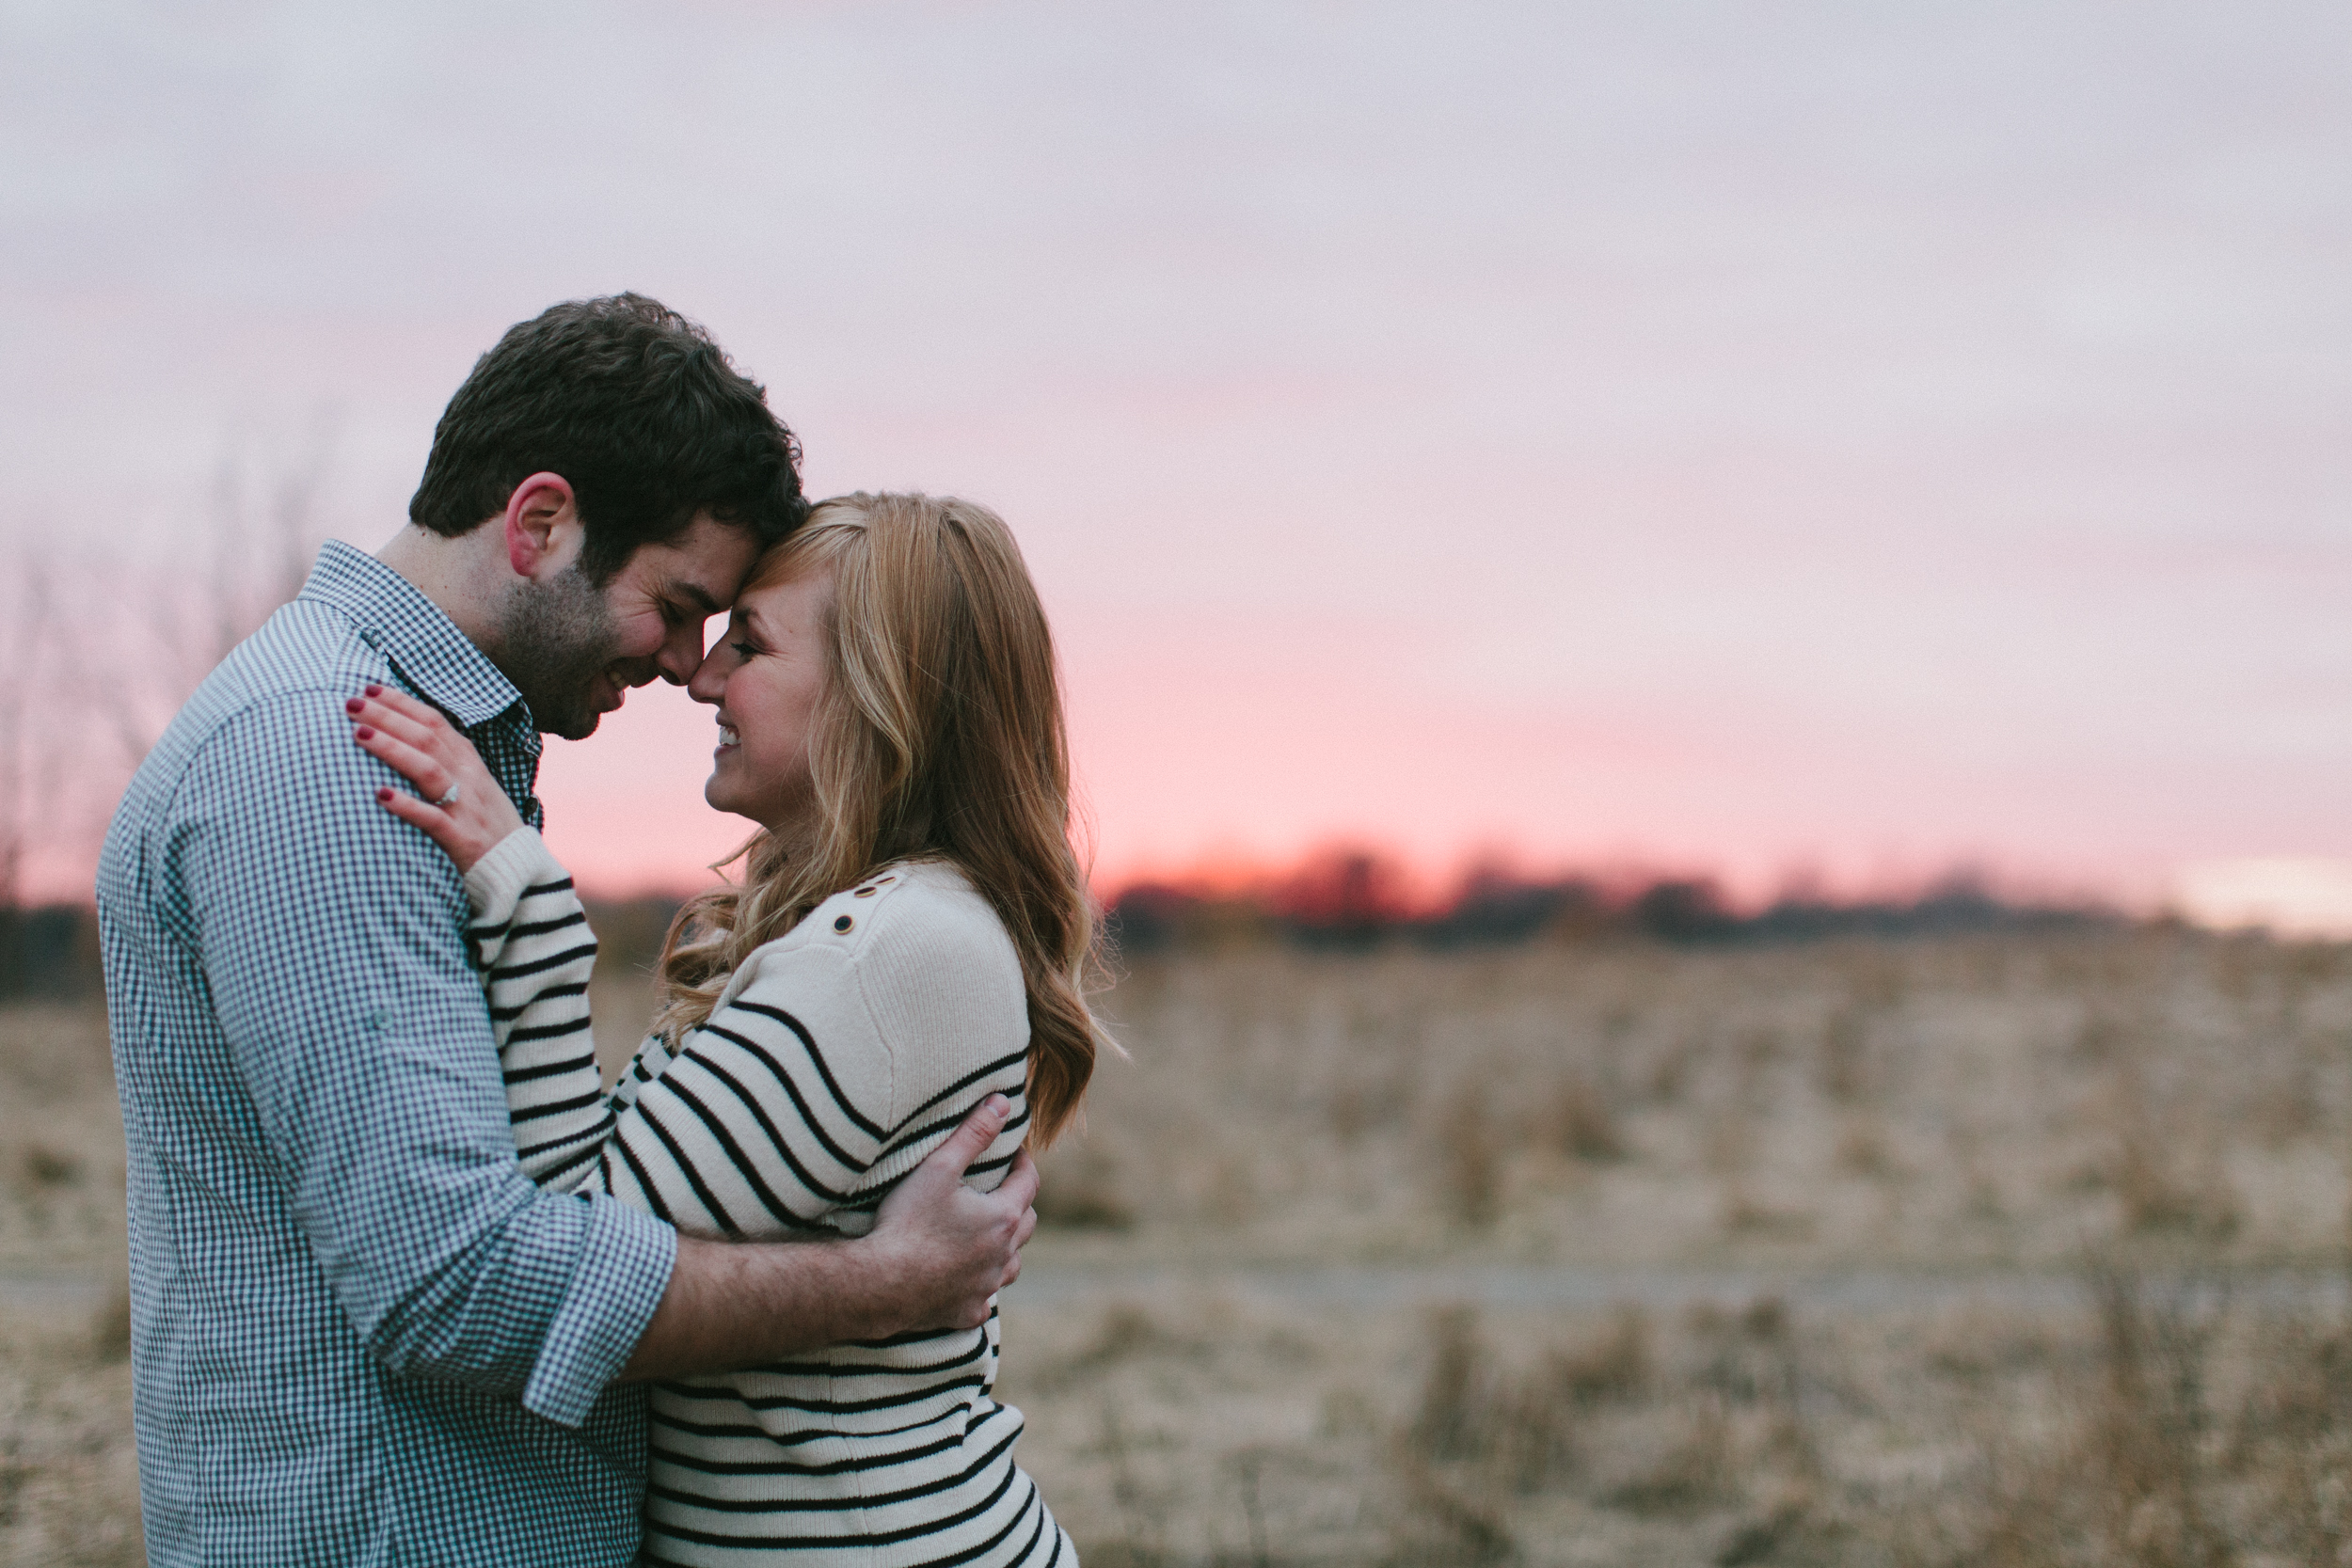 Detroit Michigan Belle Isle Engagement photos Lifestyle Wedding Photographer Mae Stier Candid Photography-038.jpg